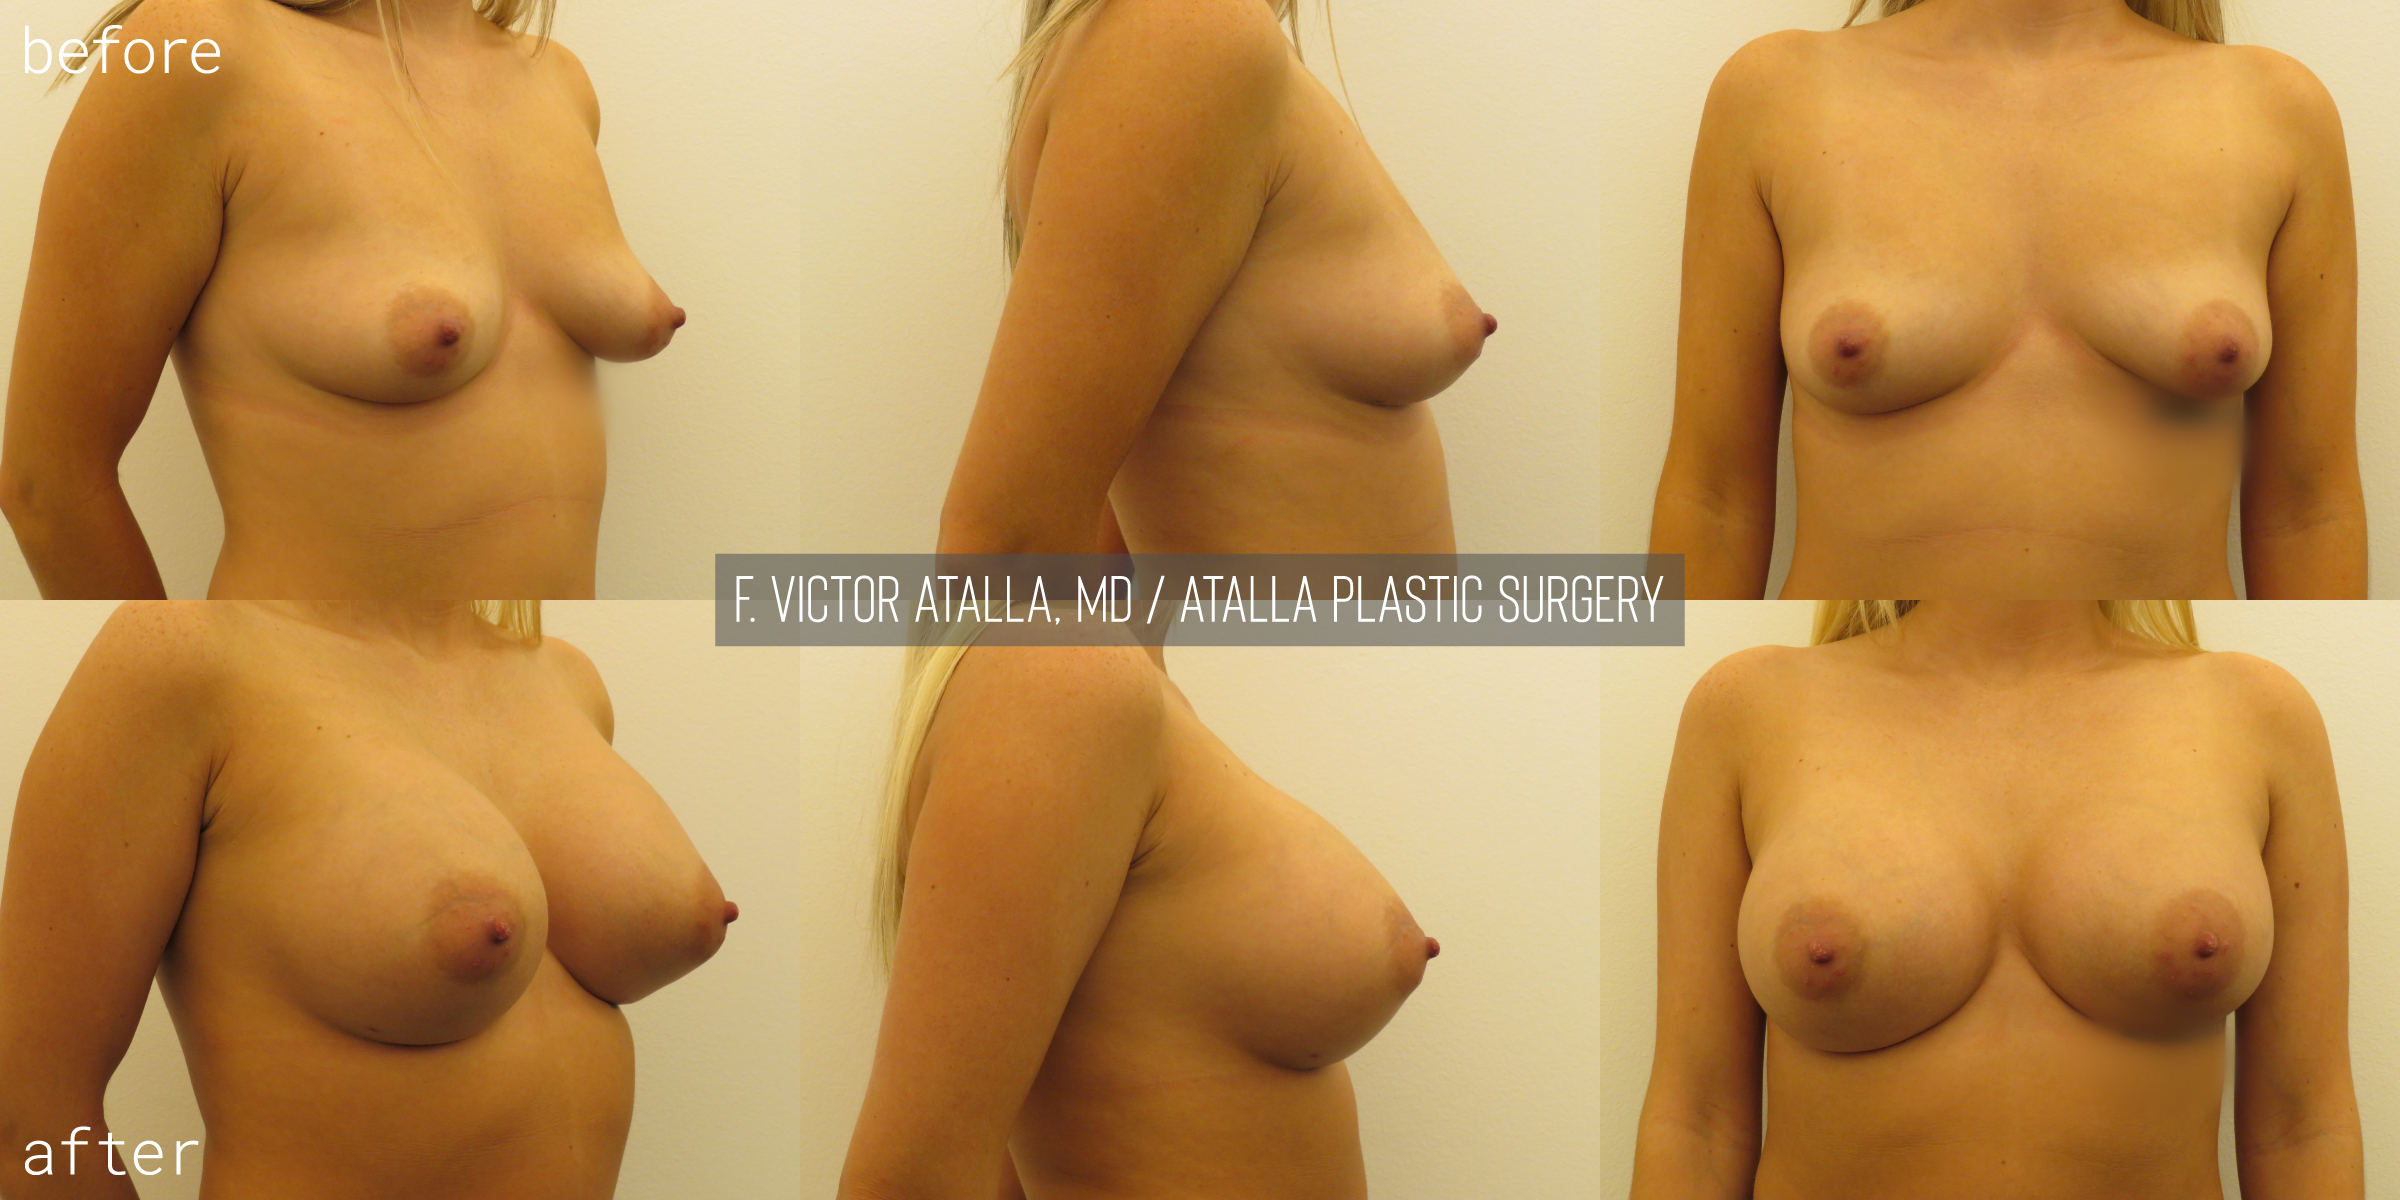 30 year old female | six months status post, 350cc smooth, round submuscular gel implant